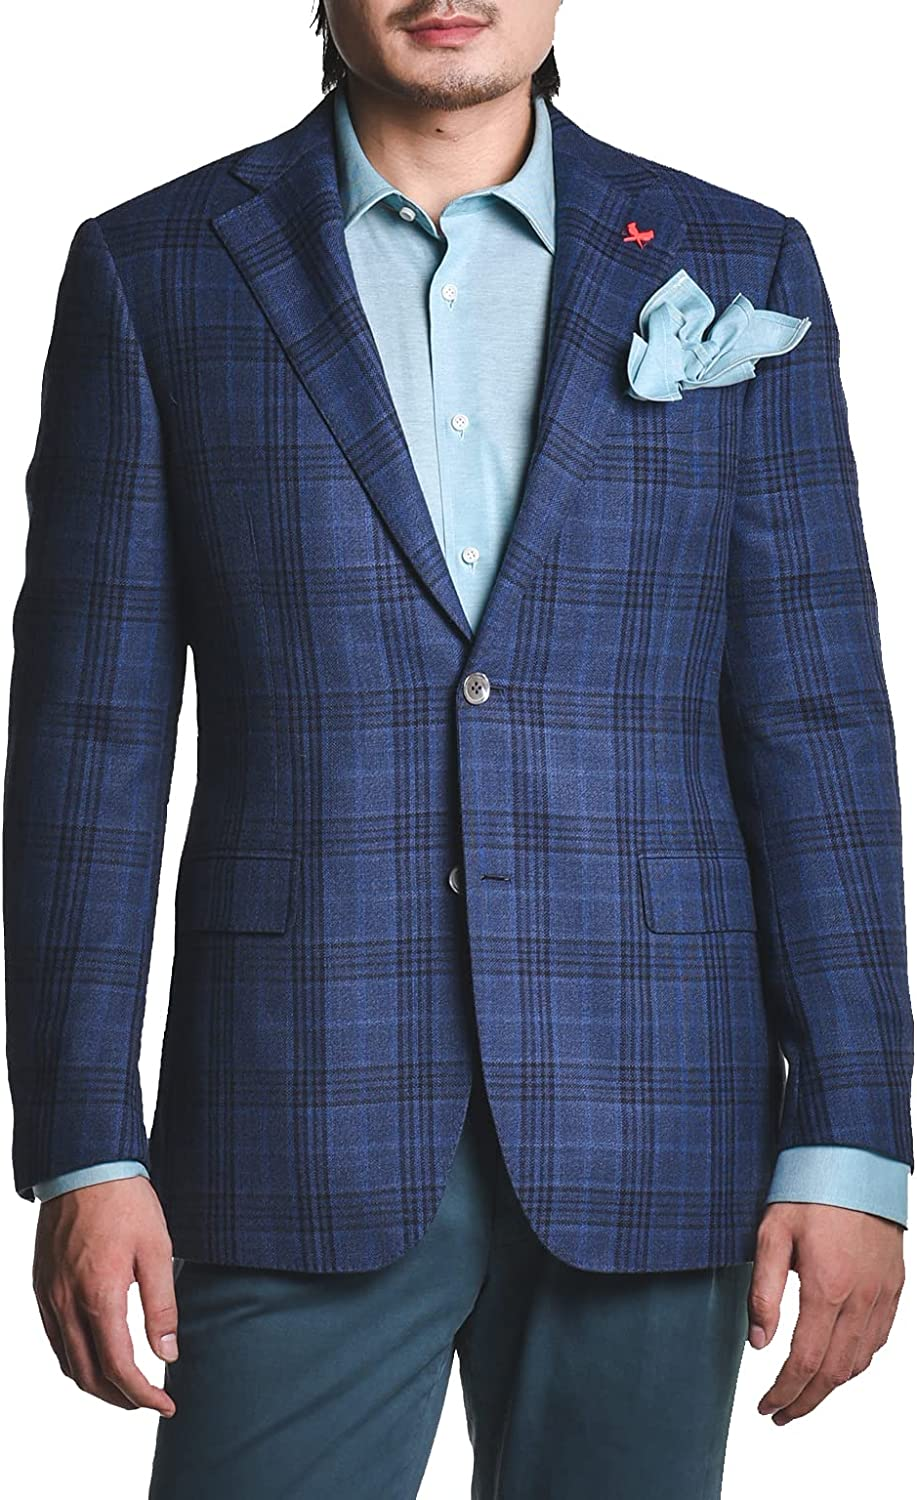 CARDINAL OF CANADA Men's Blazer, Modern Fit Wool Plaid Sports Coat - Business Casual and Formal Suit Jacket